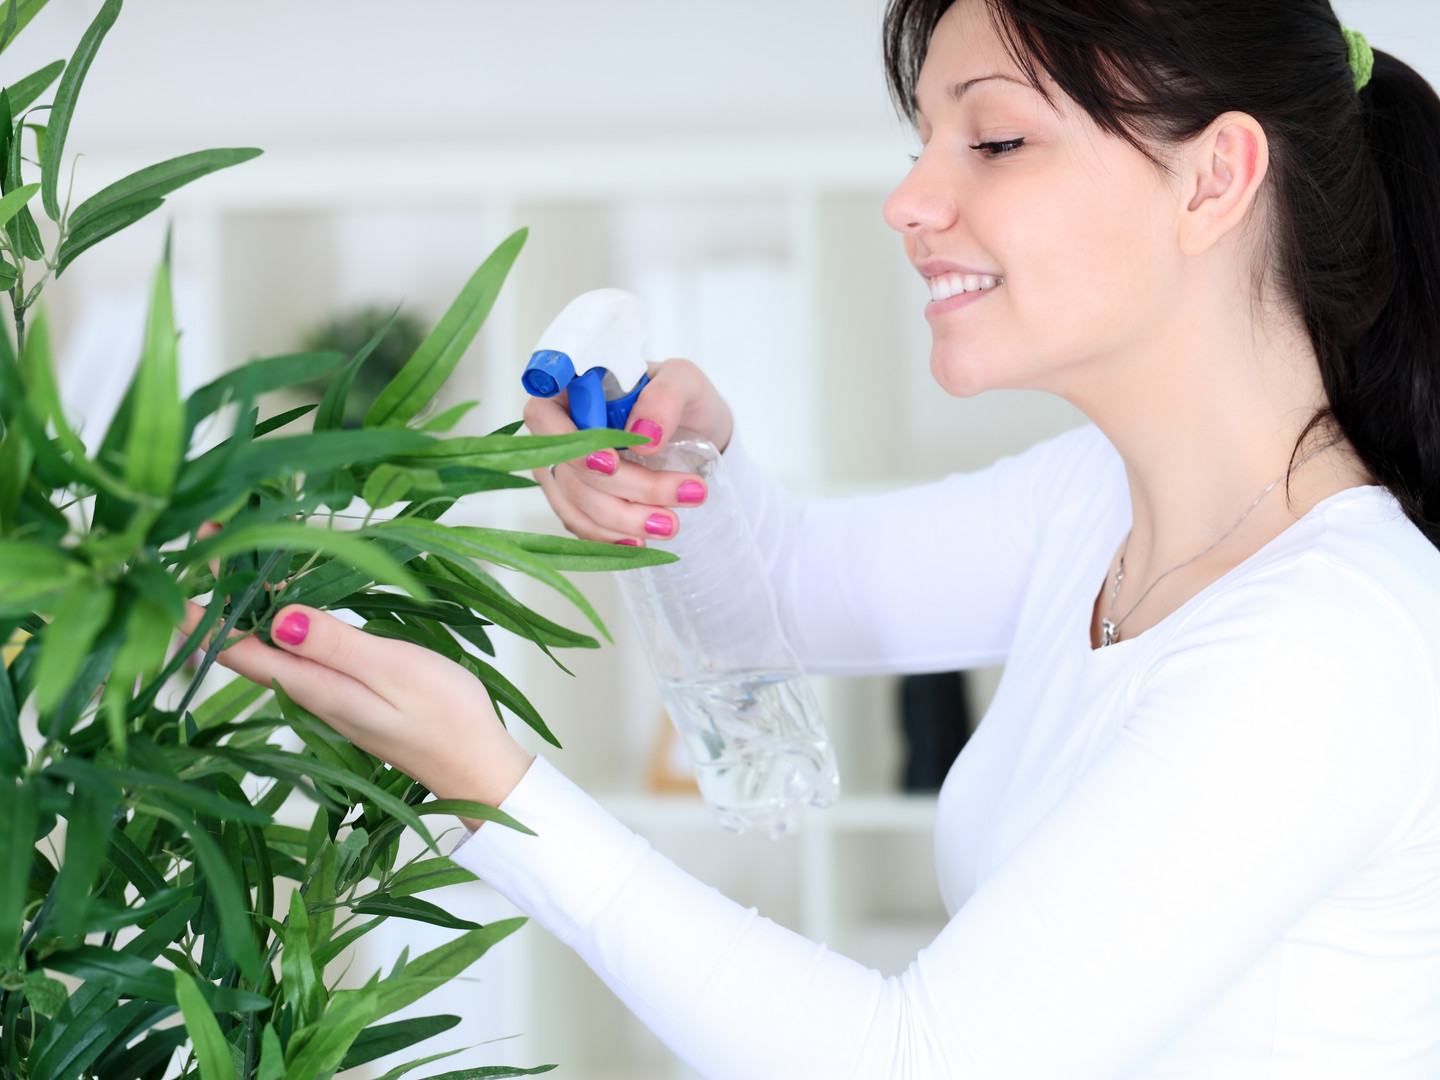 Young woman cultivating flowers.jpg